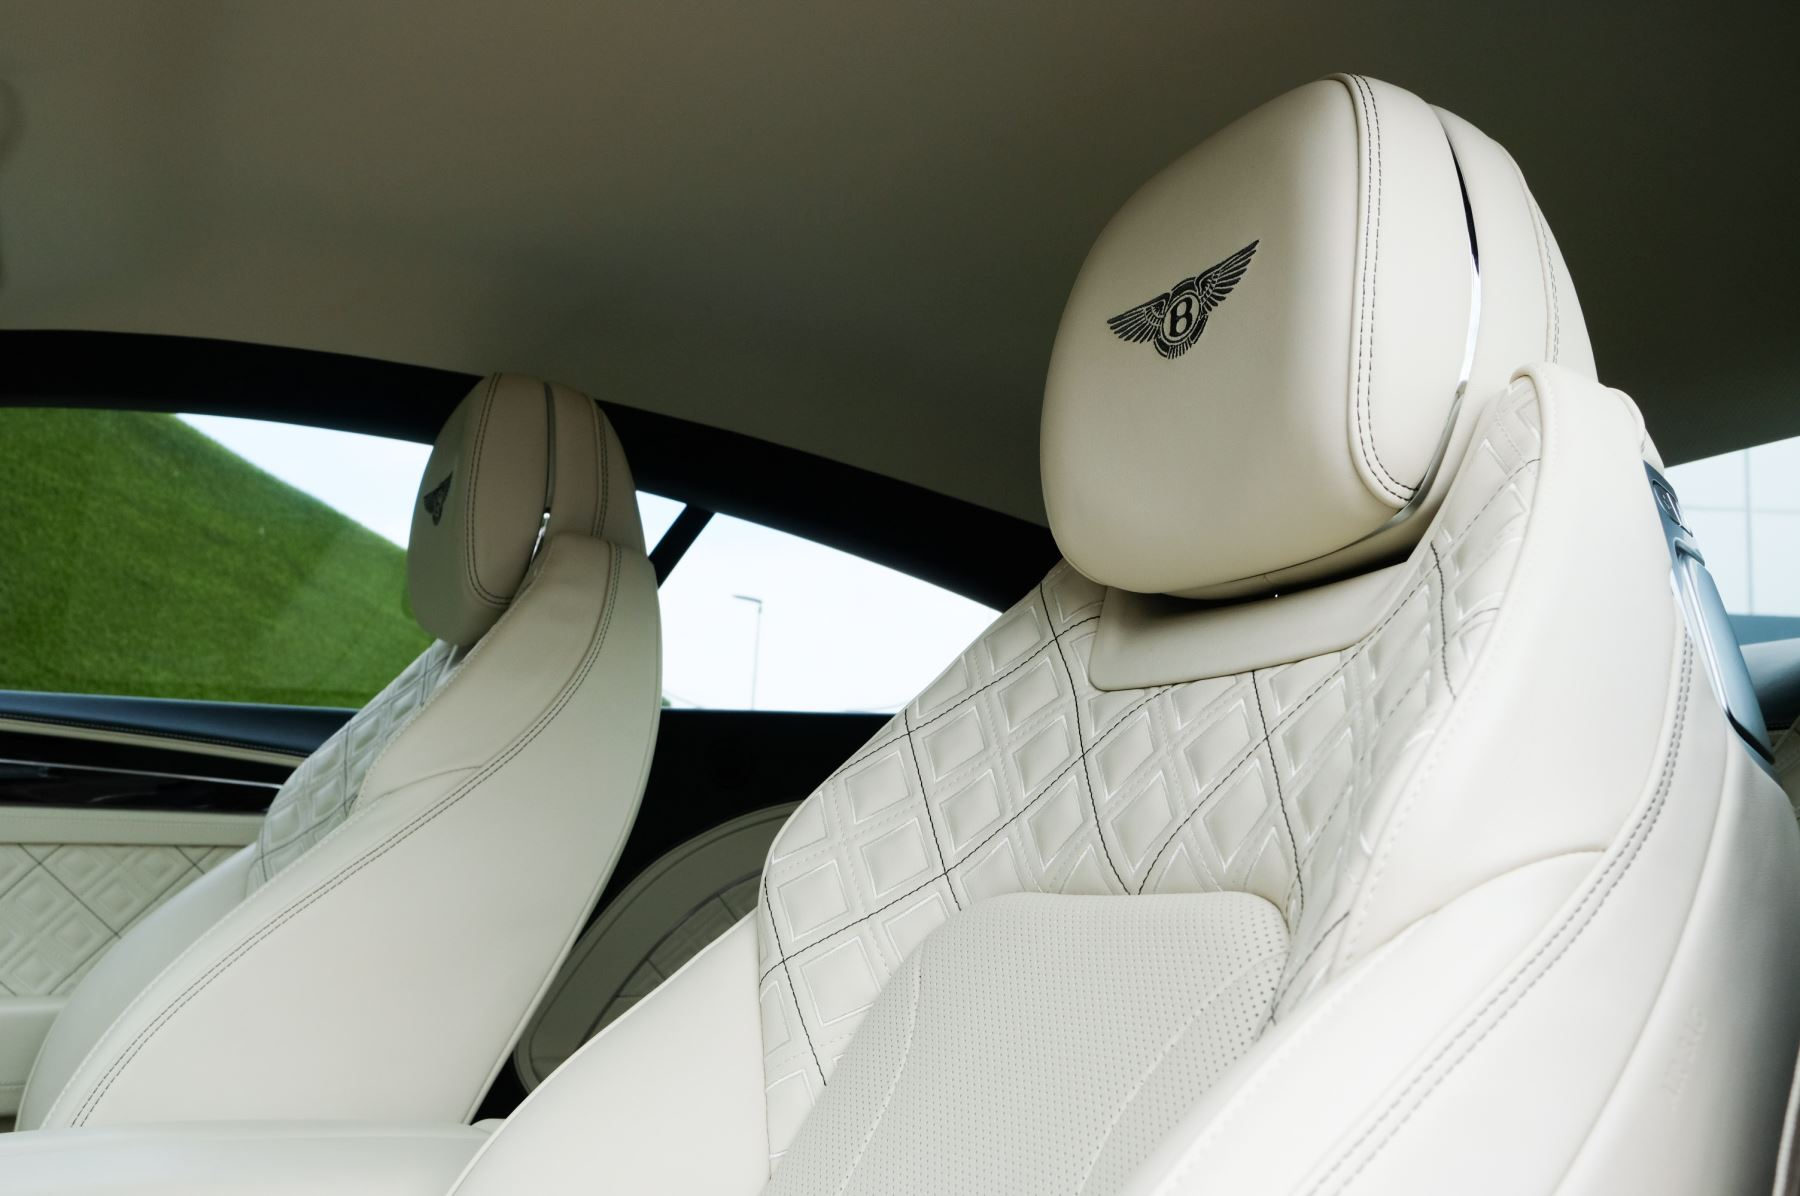 Bentley Continental GT 6.0 W12 1st Edition - Comfort Seating - Touring Specification image 23